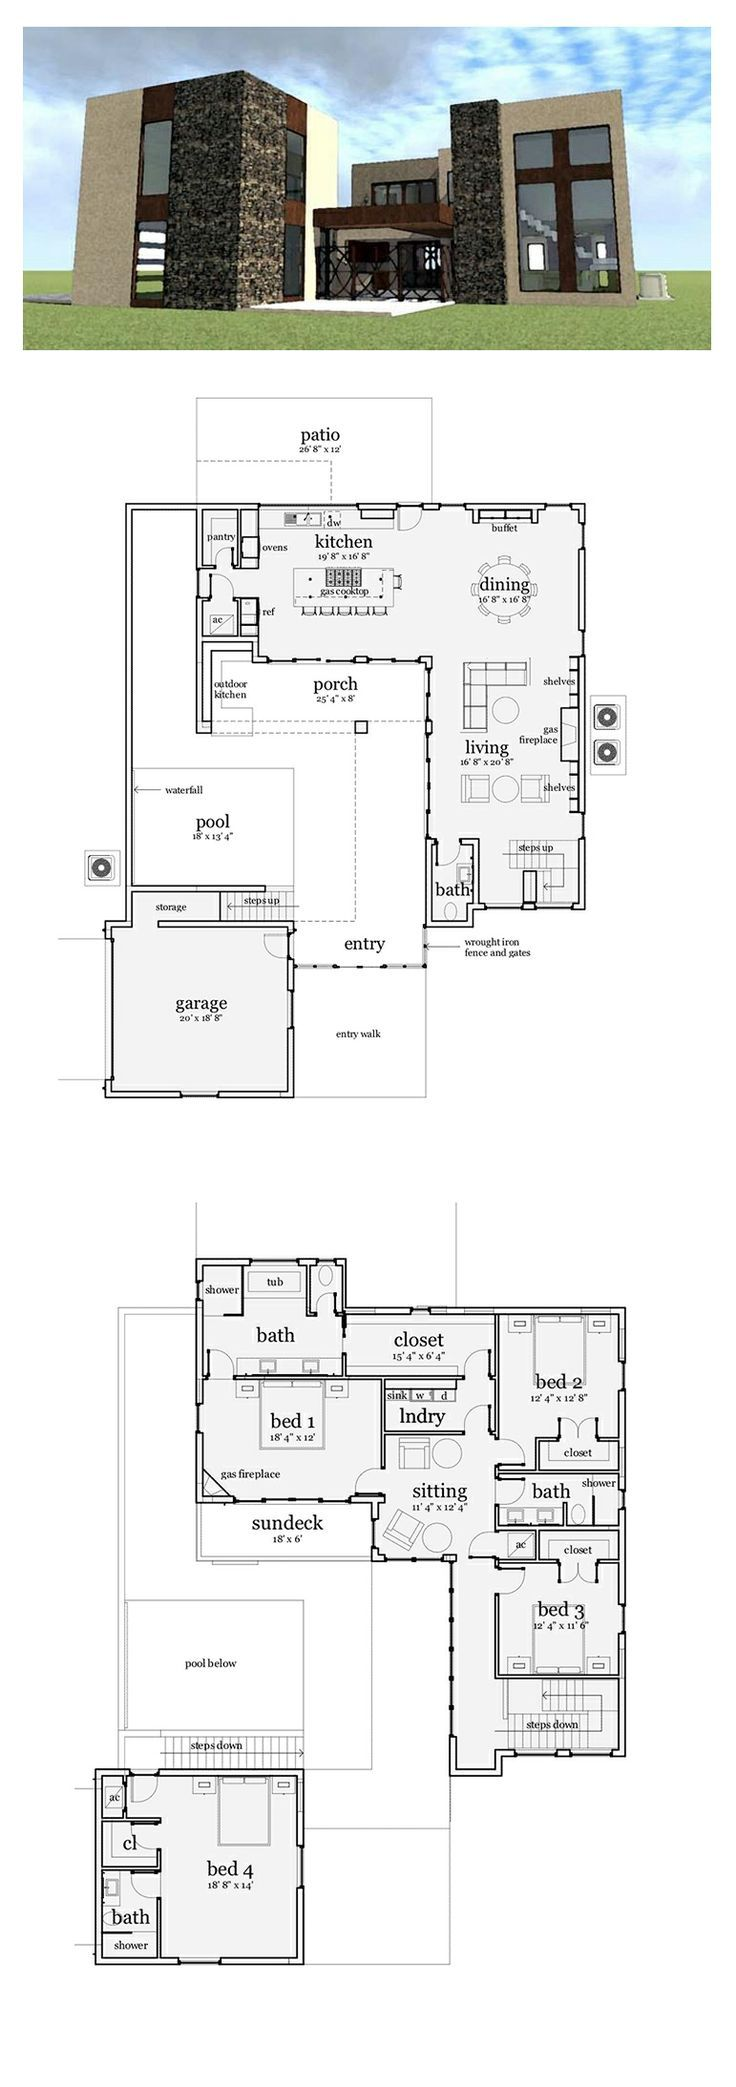 Small 5 Bedroom House Plans 17 Best Images About Floor Plans On Pinterest One Bedroom